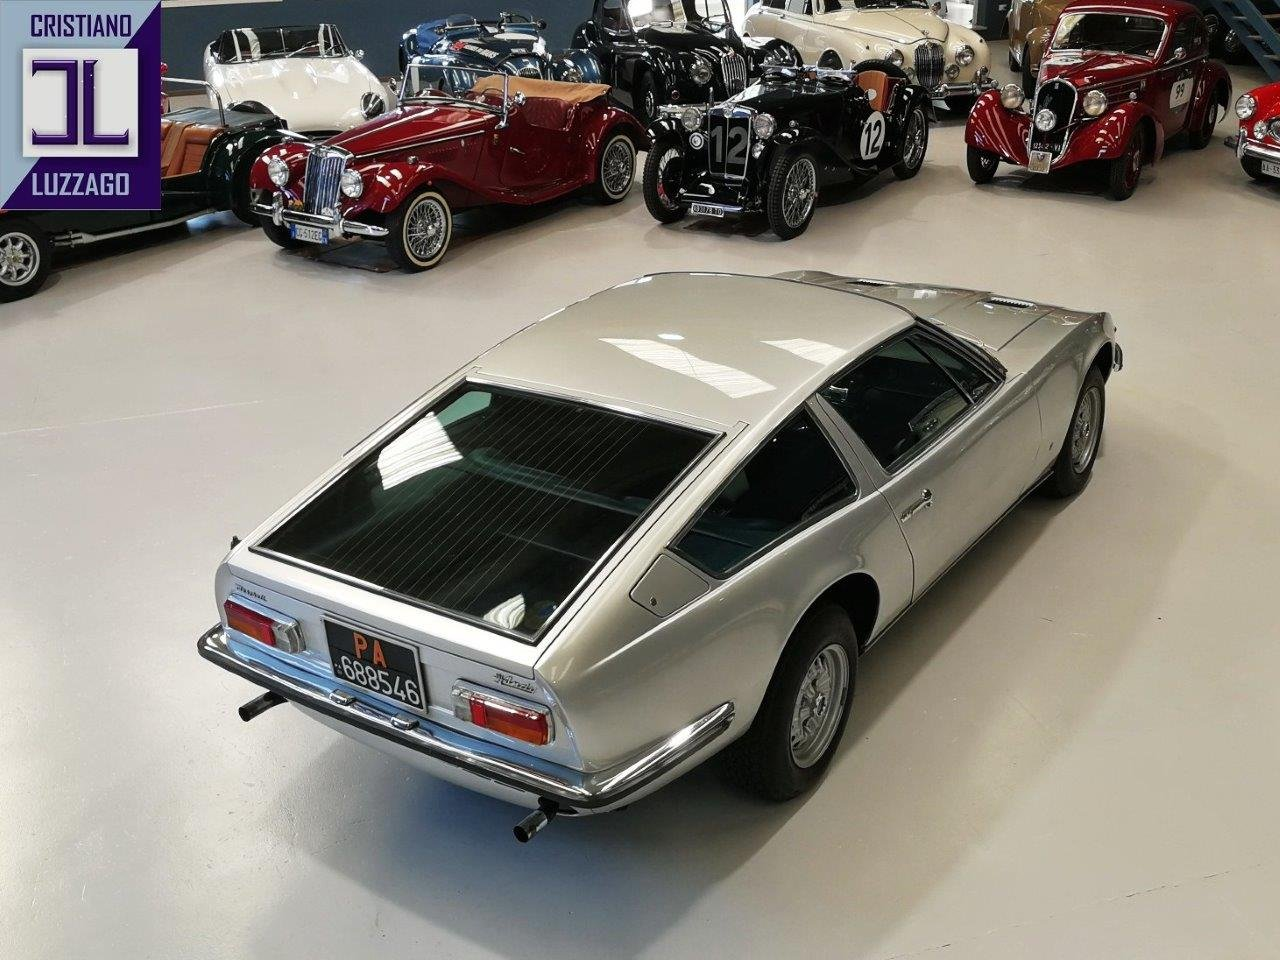 1969 MASERATI INDY 4.200 SHOW CAR of 51° SALONE DELL'AUTOMOBILE D For Sale (picture 2 of 6)